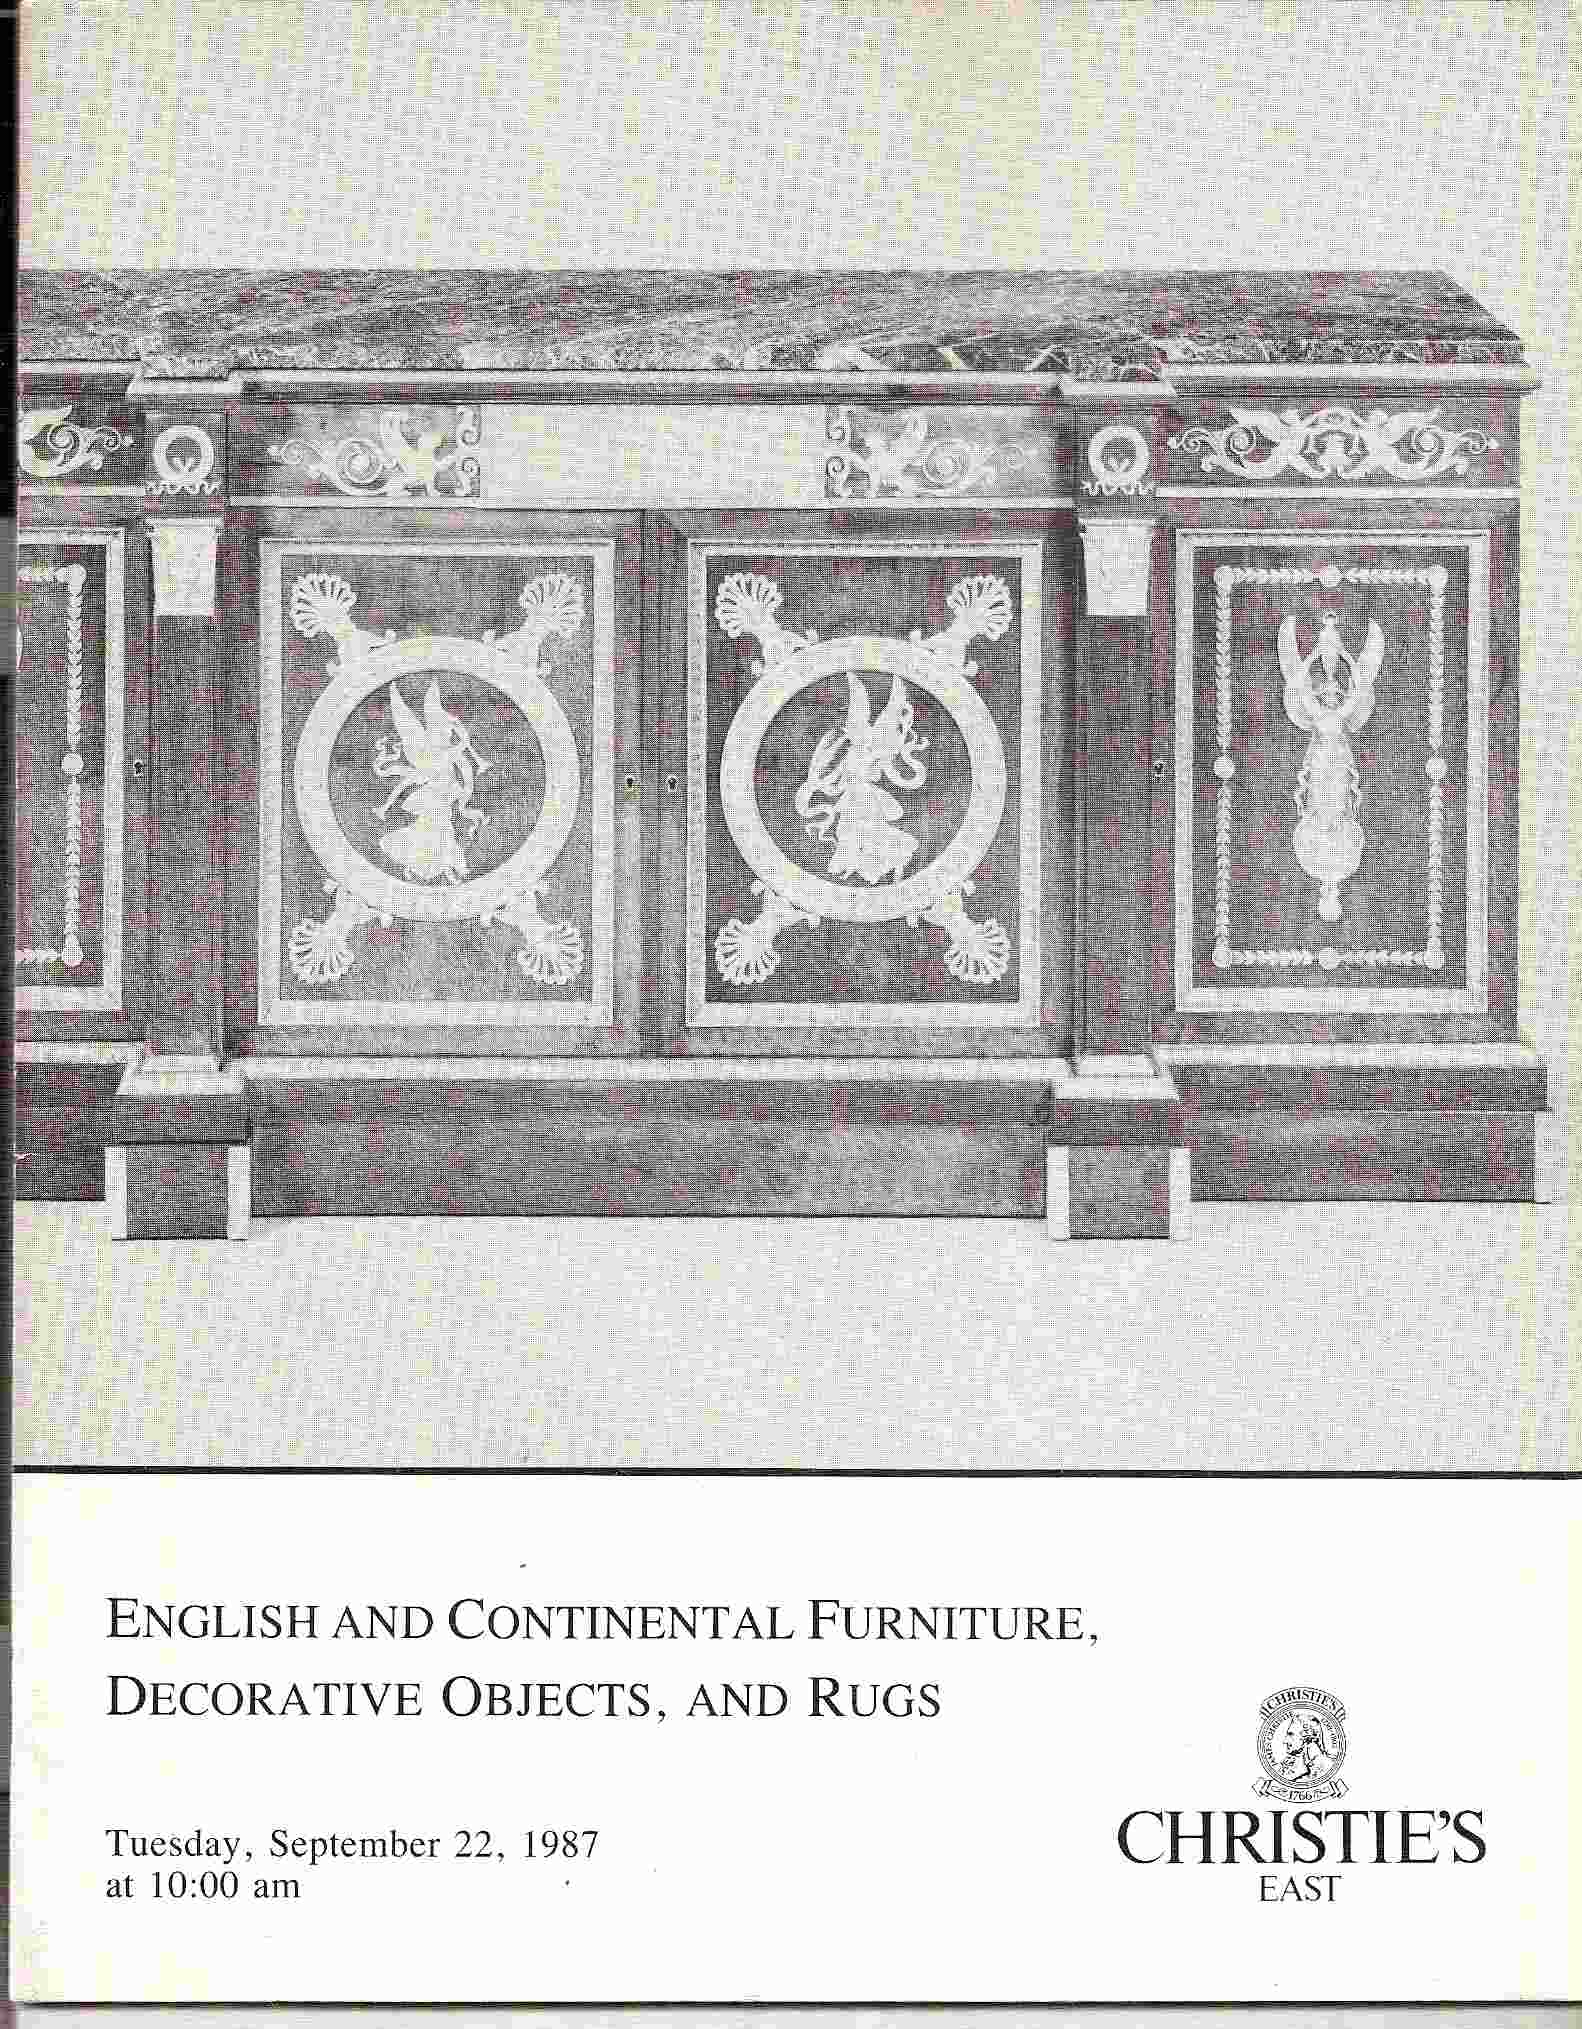 Image for Tuesday, September 22, 1987; ENGLISH & CONTINENTAL FURNITURE, DECORATIVE OBJECTS, & RUGS